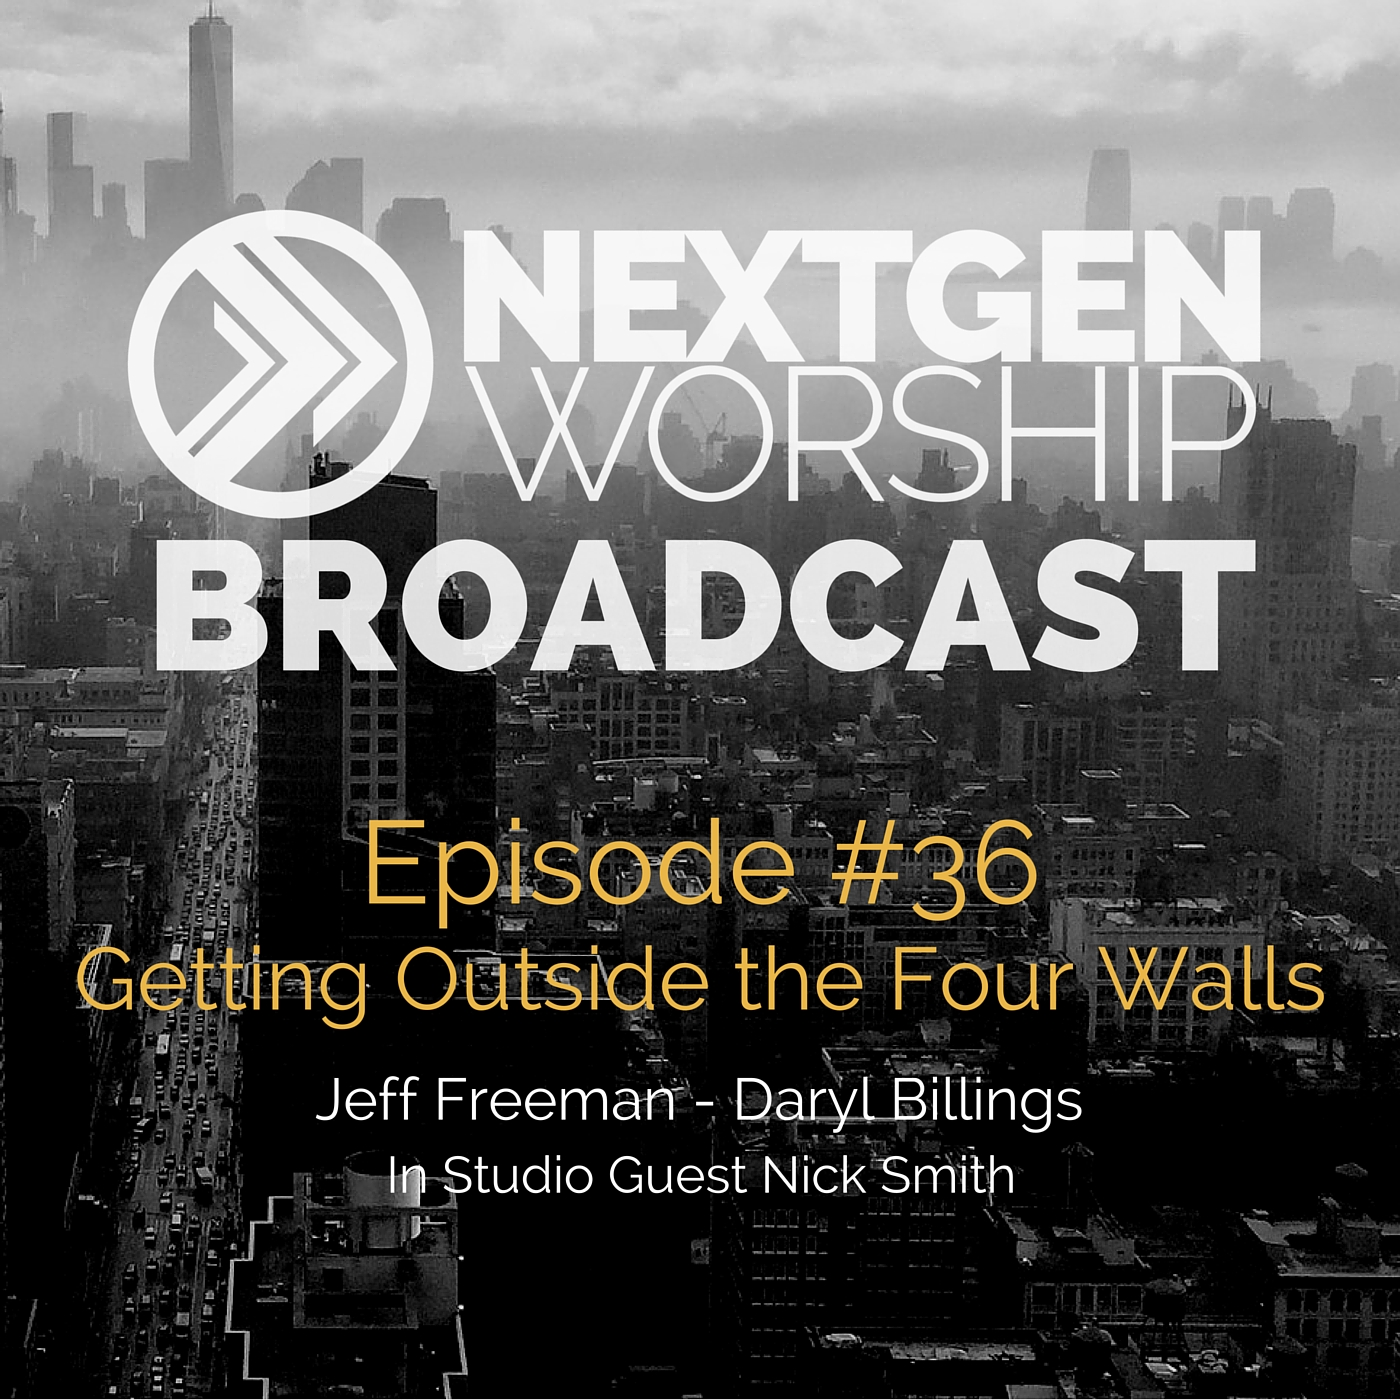 #36 Getting Outside the Four Walls | Jeff Freeman